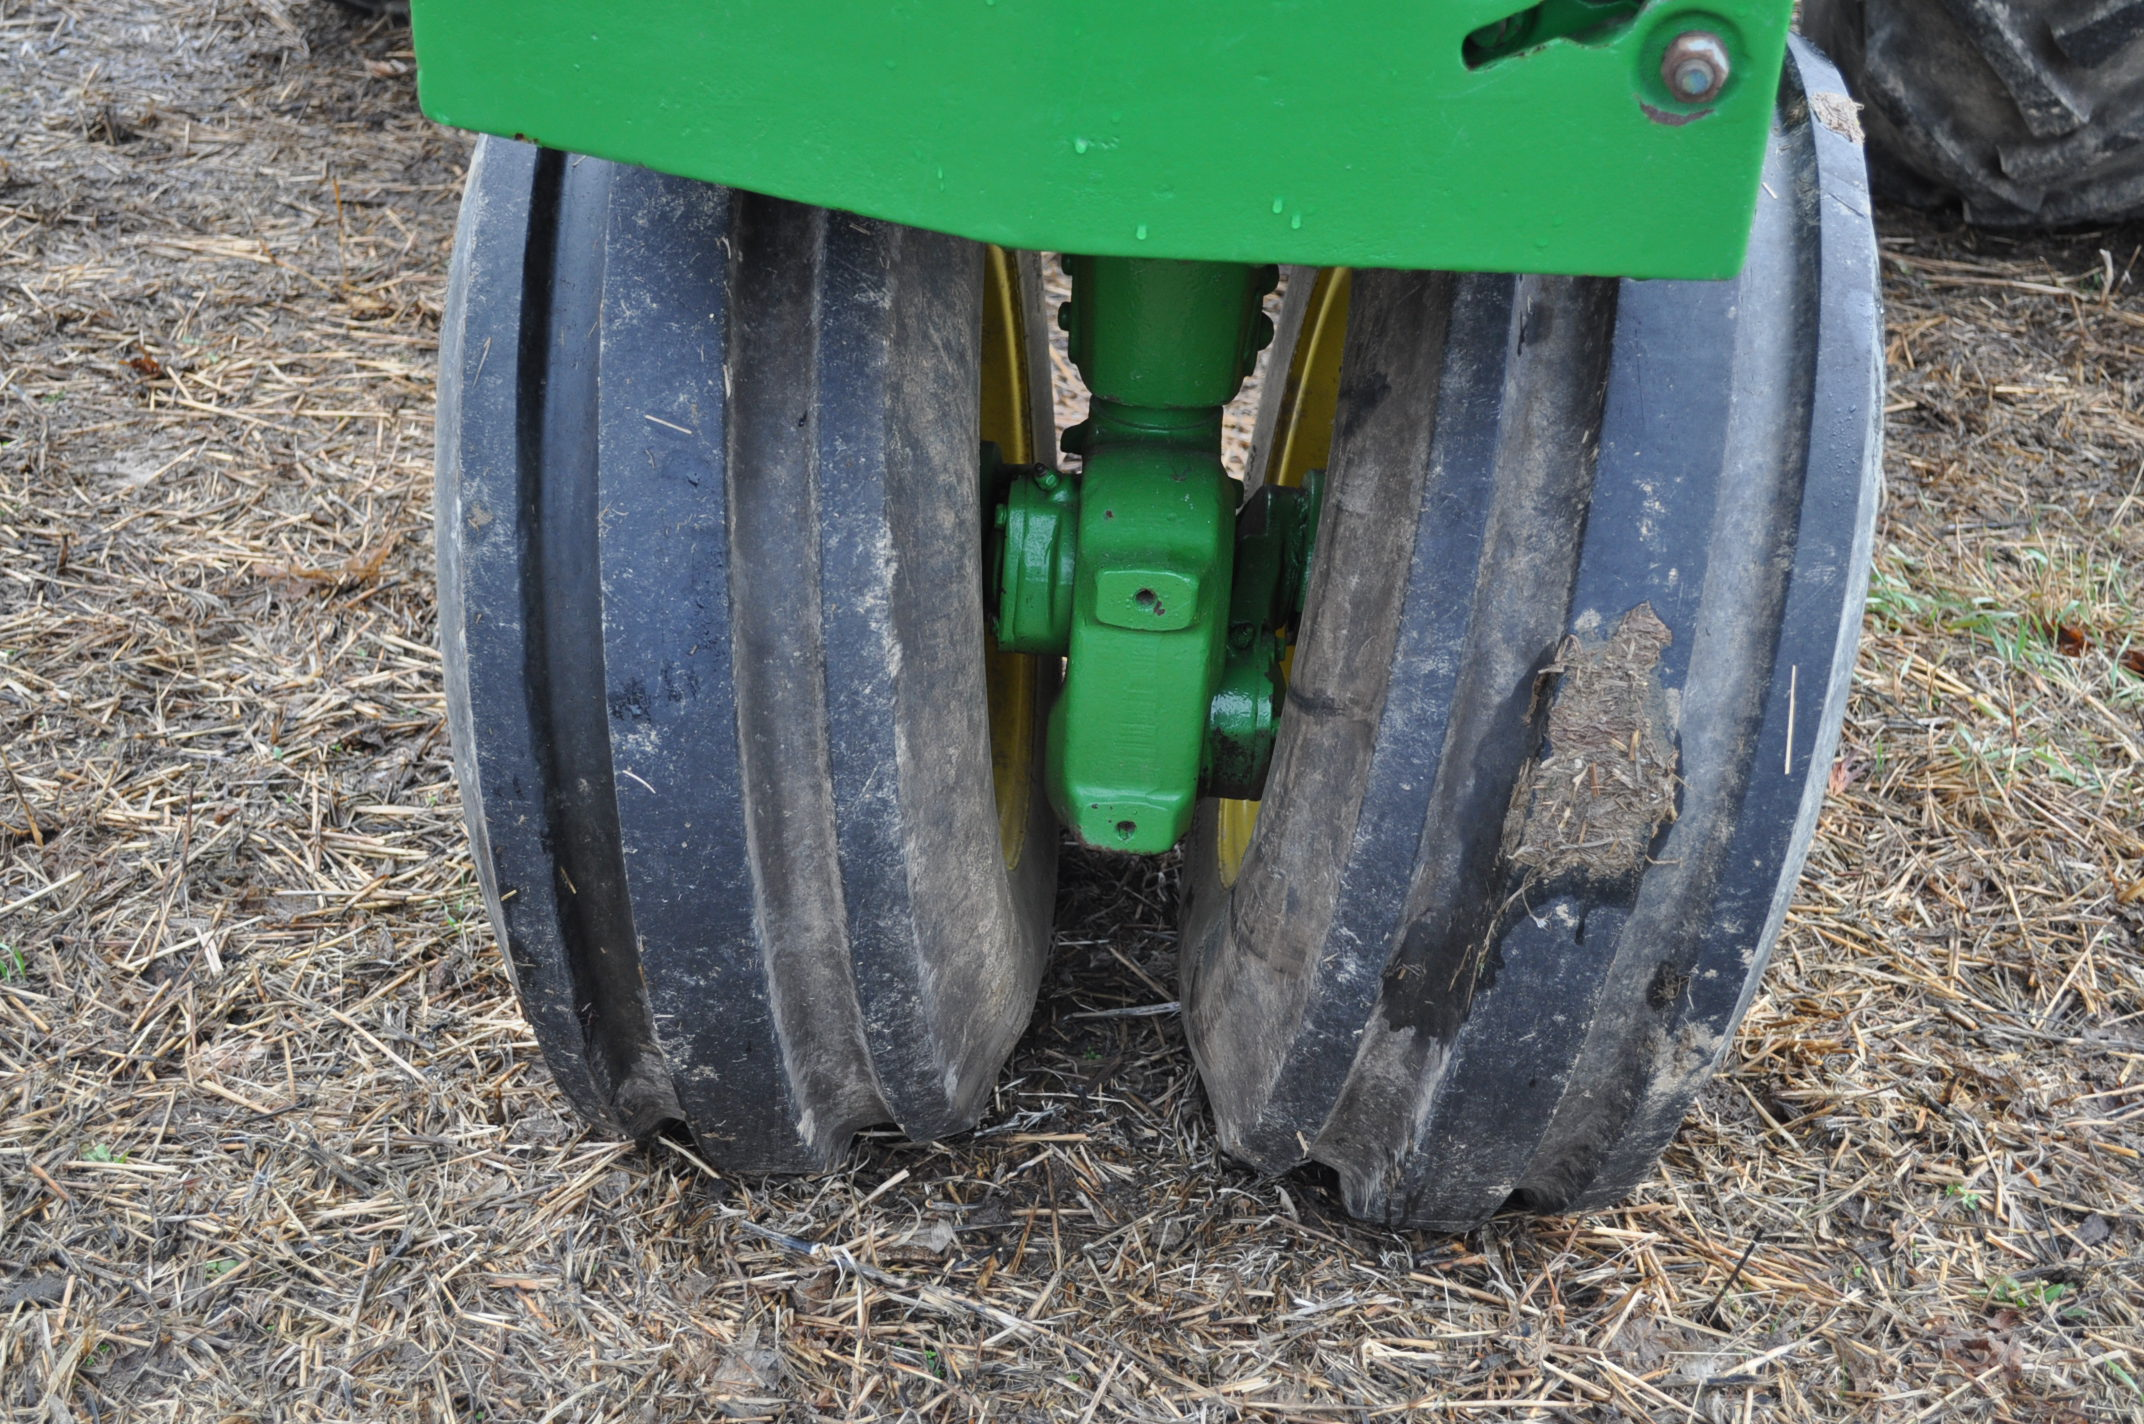 John Deere 3020 tractor, diesel, 18.4-34 rear, clamp on duals, 11L-15 narrow front, Syncro, 2 - Image 8 of 15